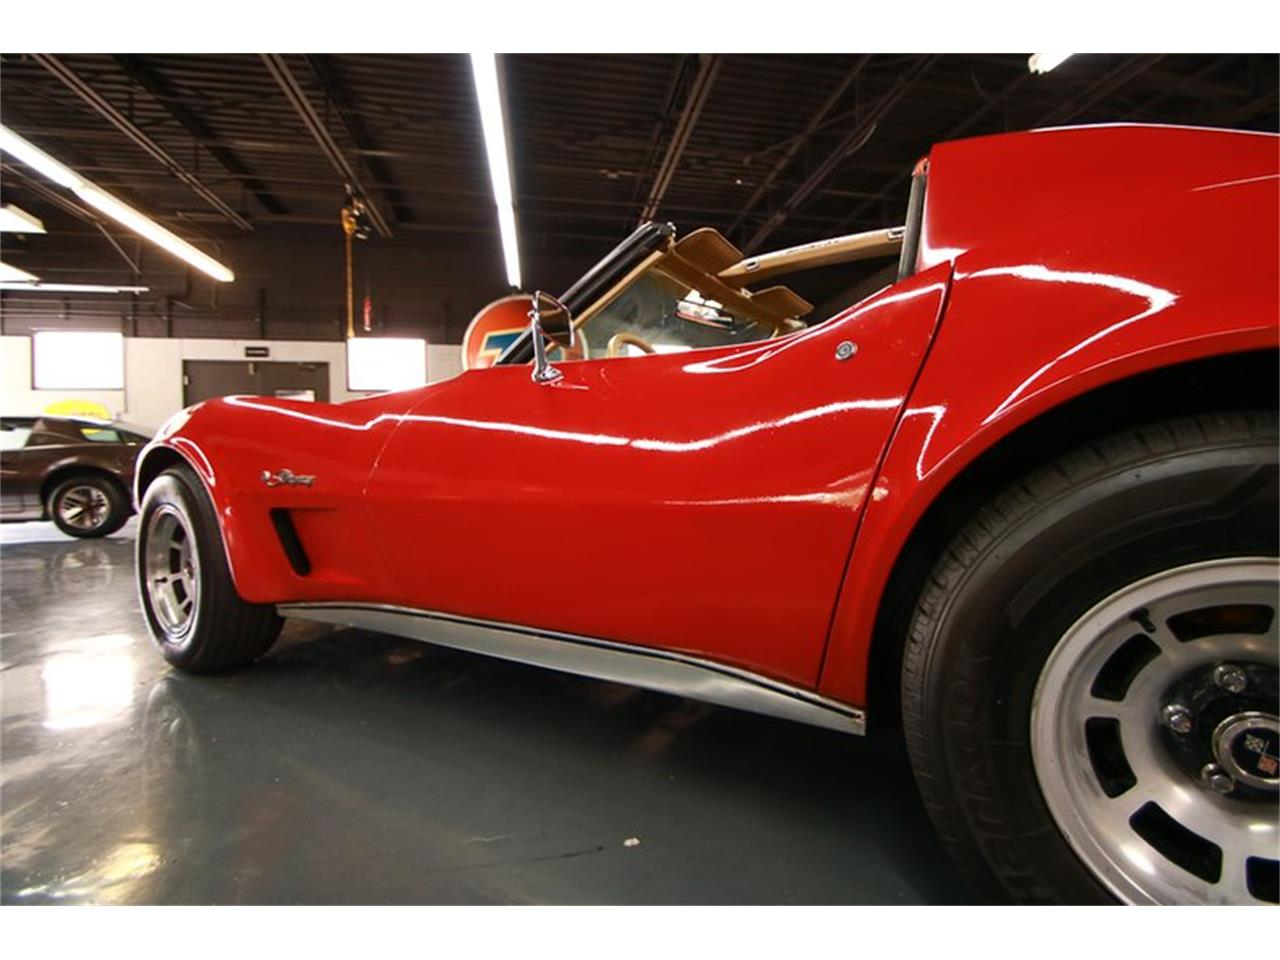 Large Picture of 1976 Chevrolet Corvette located in Cincinnati Ohio - $9,900.00 Offered by Seven Hills Motorcars - QHTE